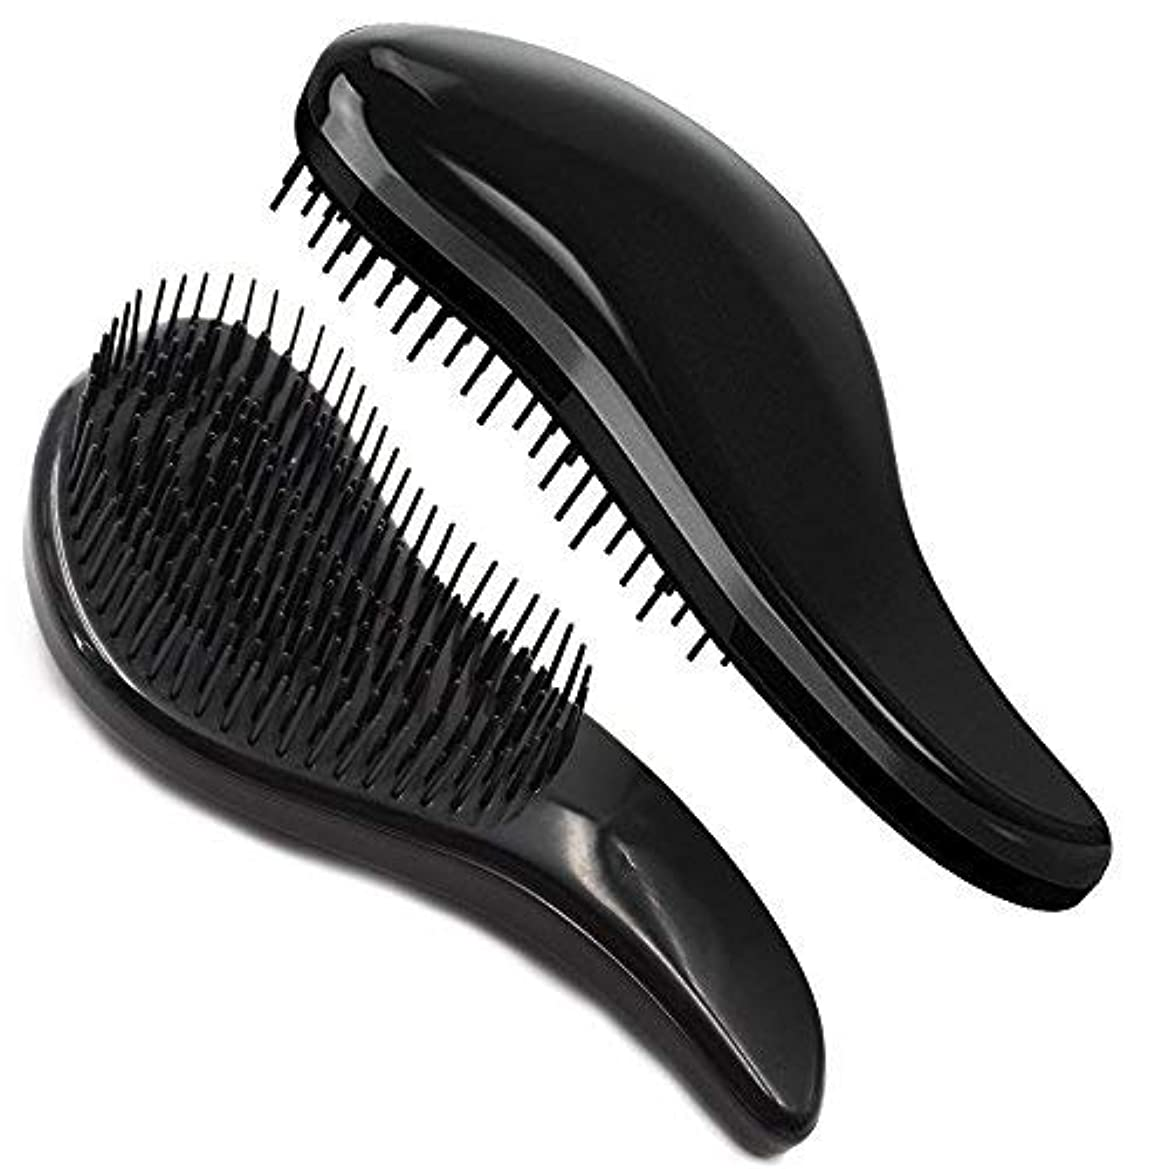 ロッカーショット騒々しいBrush Master Detangler Hair Comb Hair Brush for Wet Hair Curly Hair Straight Hair for Women Men Kids Black [並行輸入品]